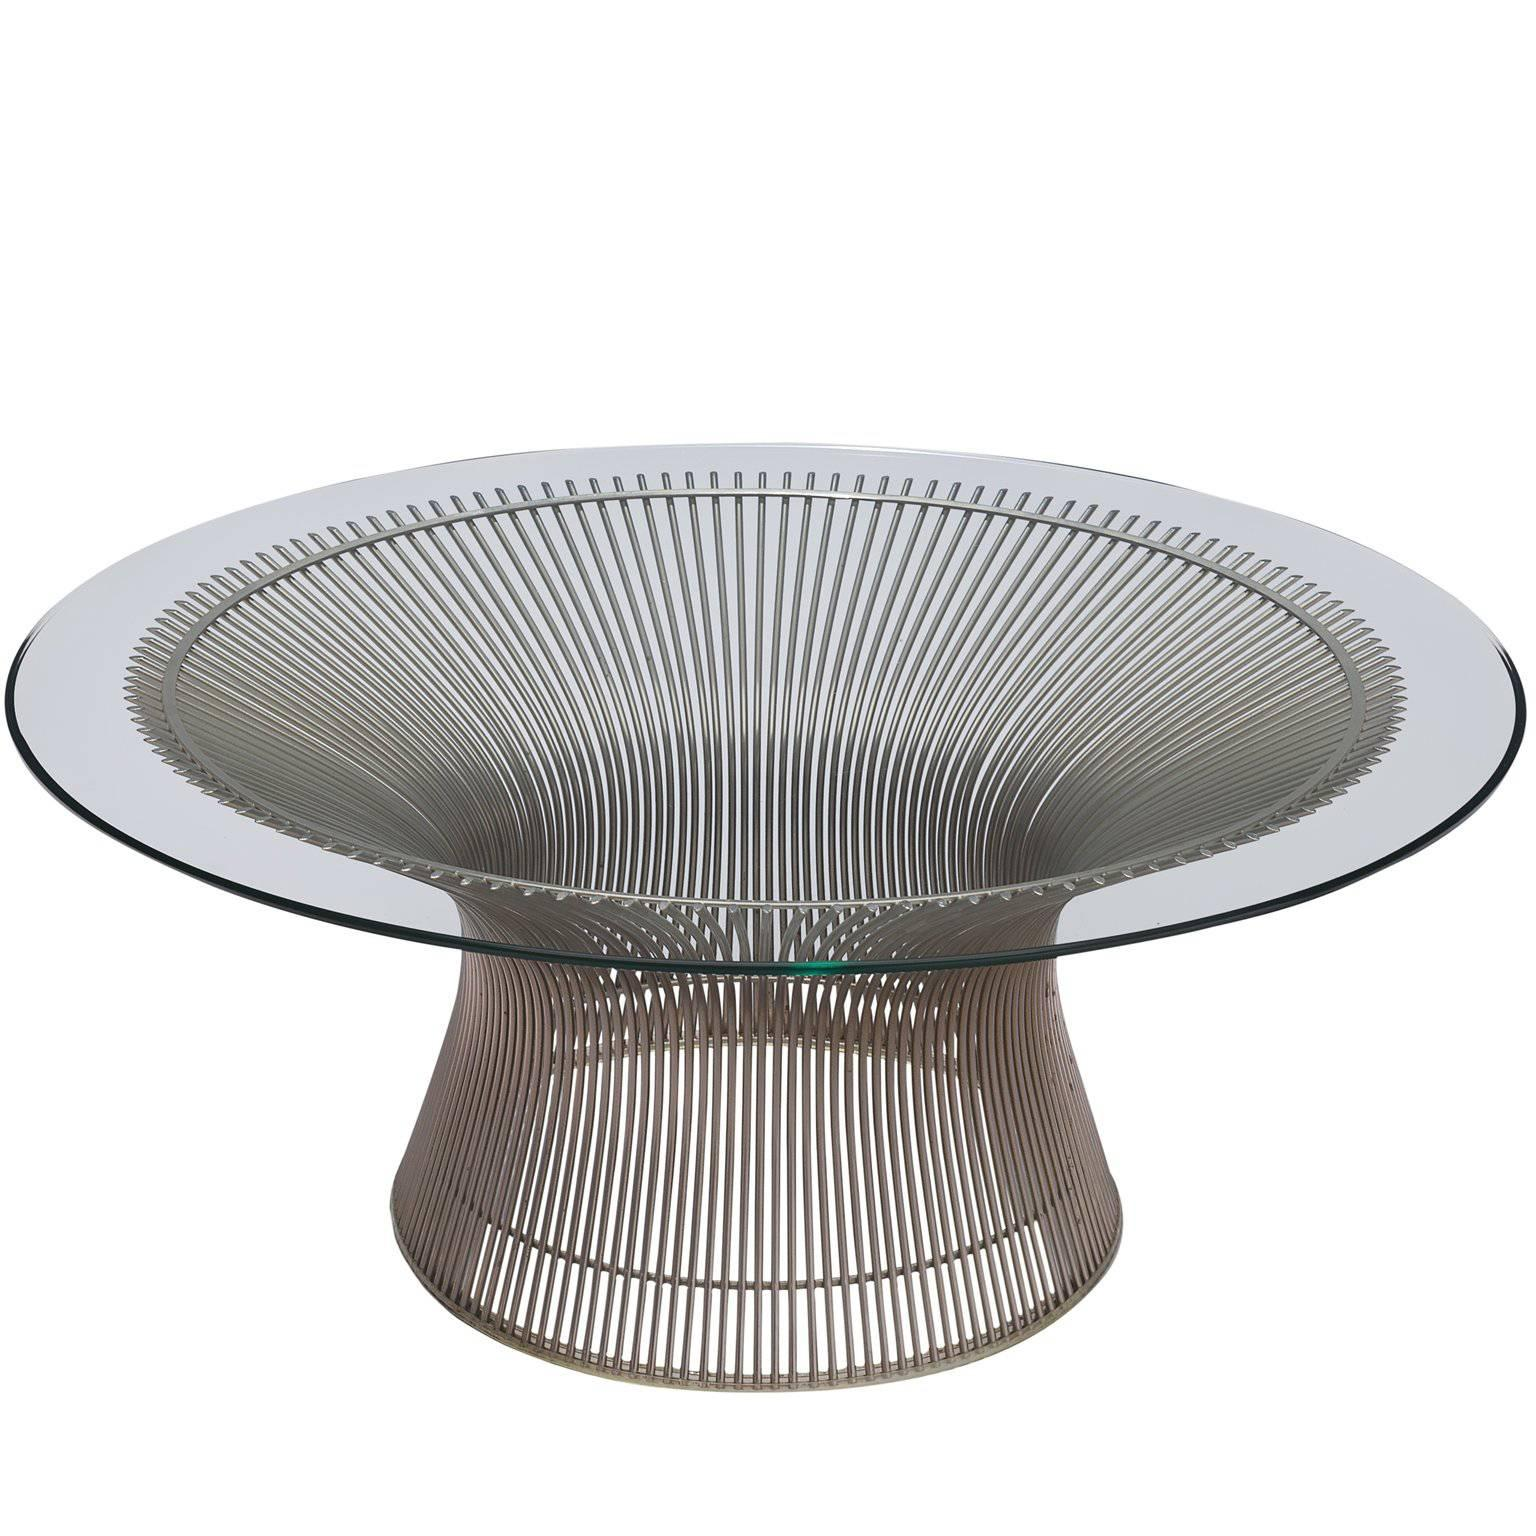 Warren Platner For Knoll Coffee Table With Glass For Sale